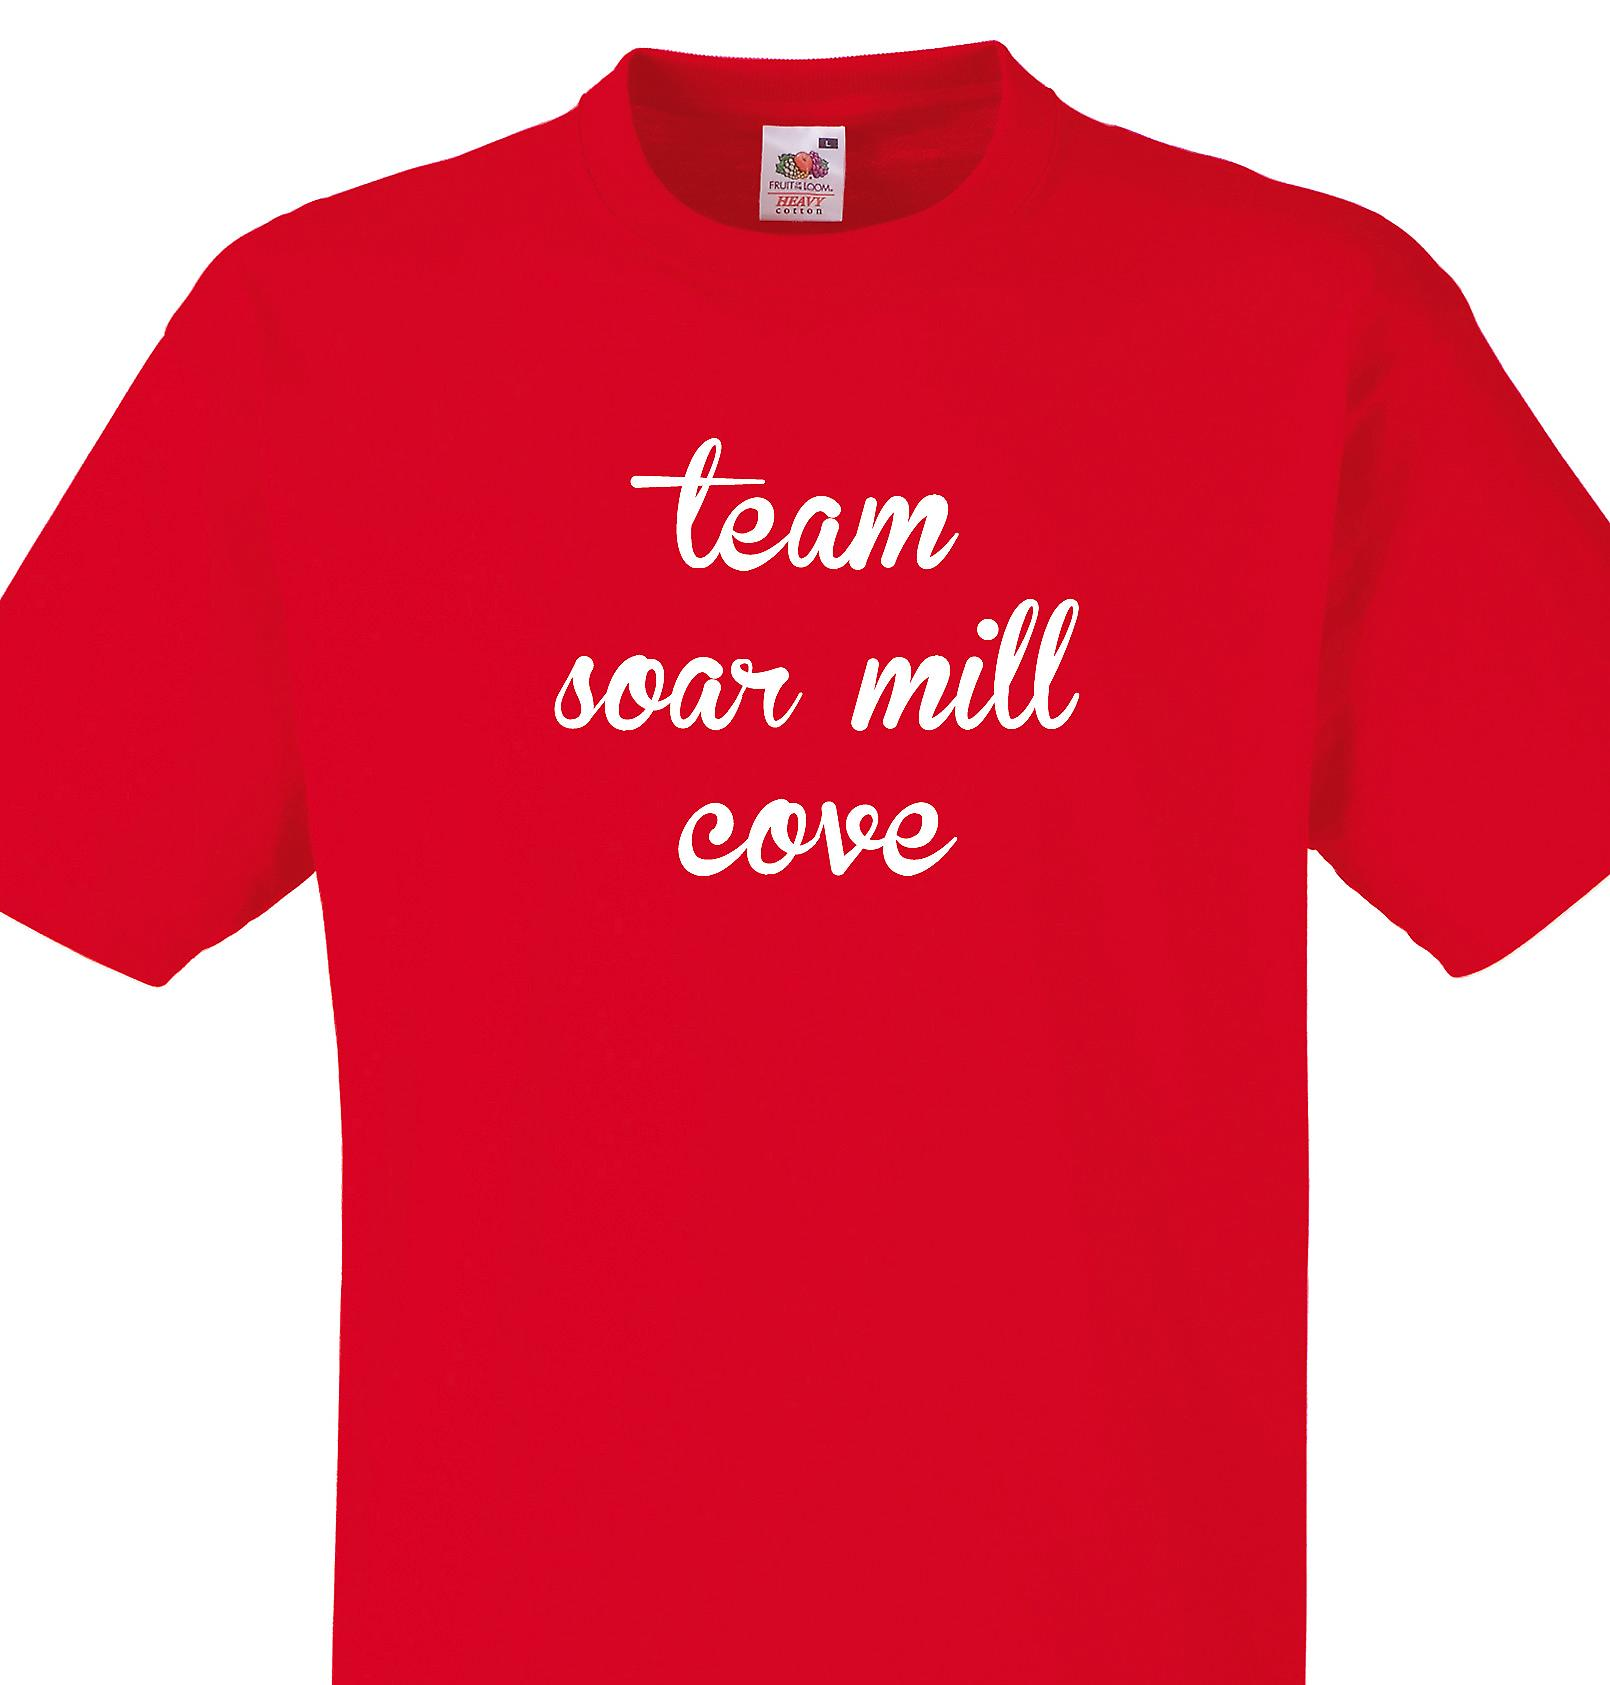 Team Soar mill cove Red T shirt